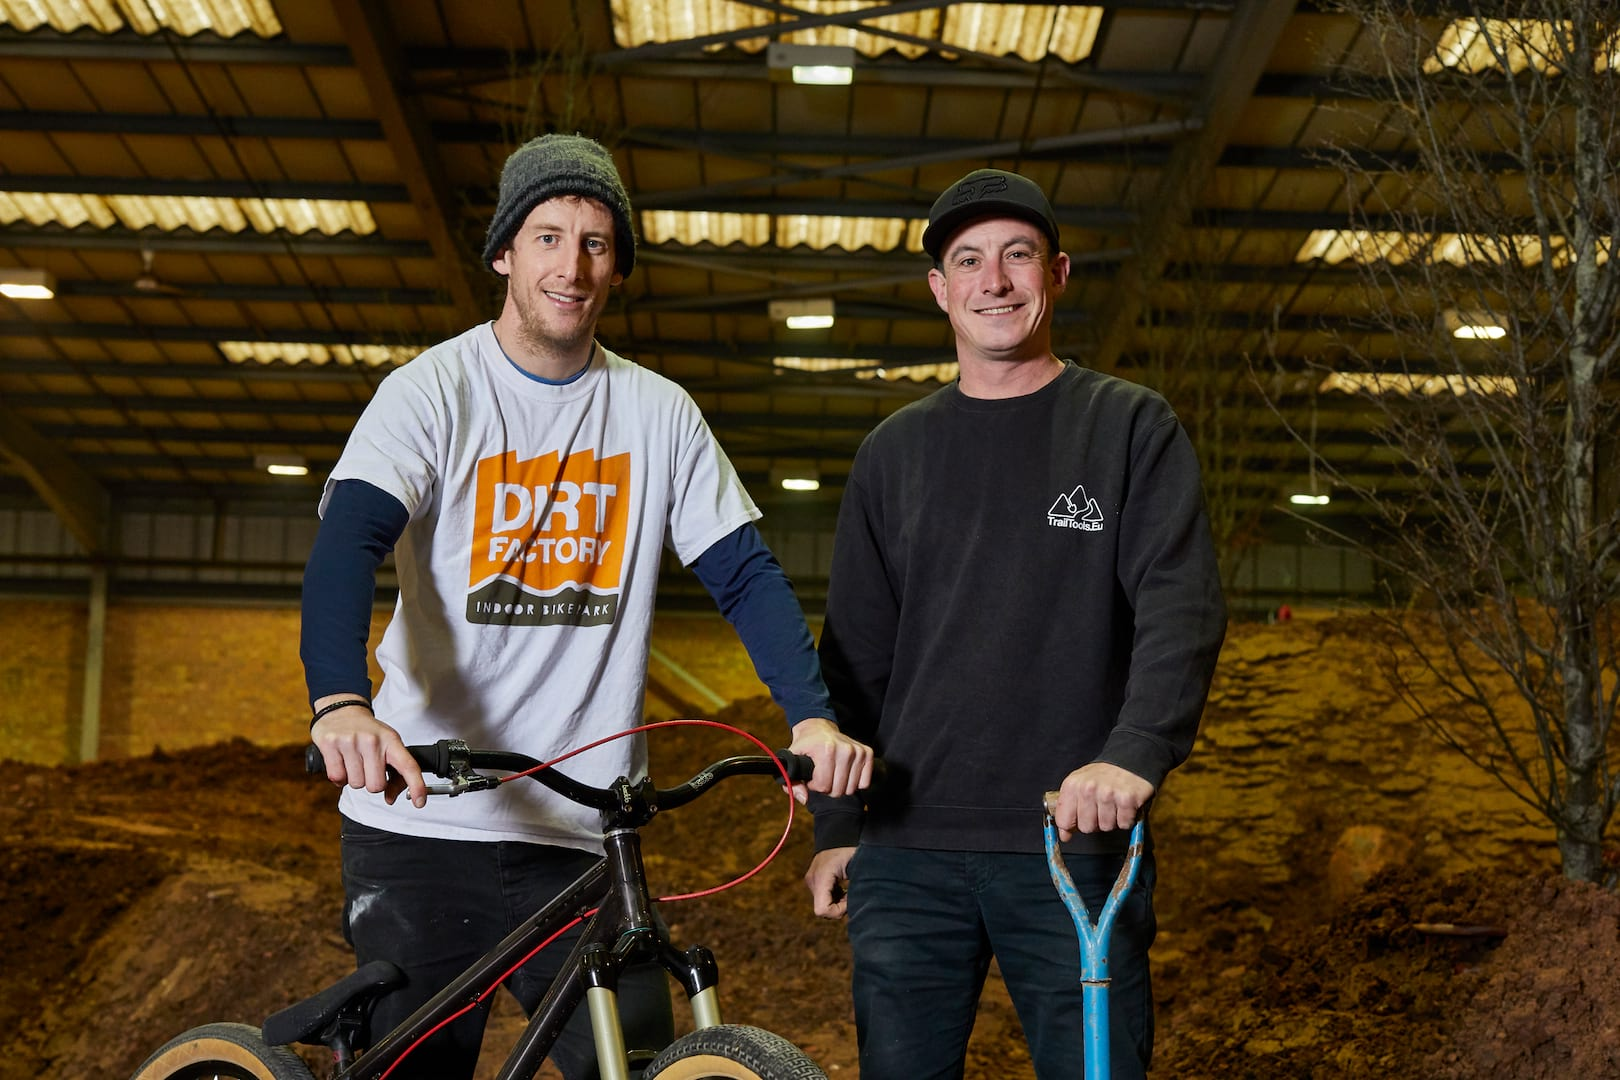 dirt factory indoor mtb park manchester